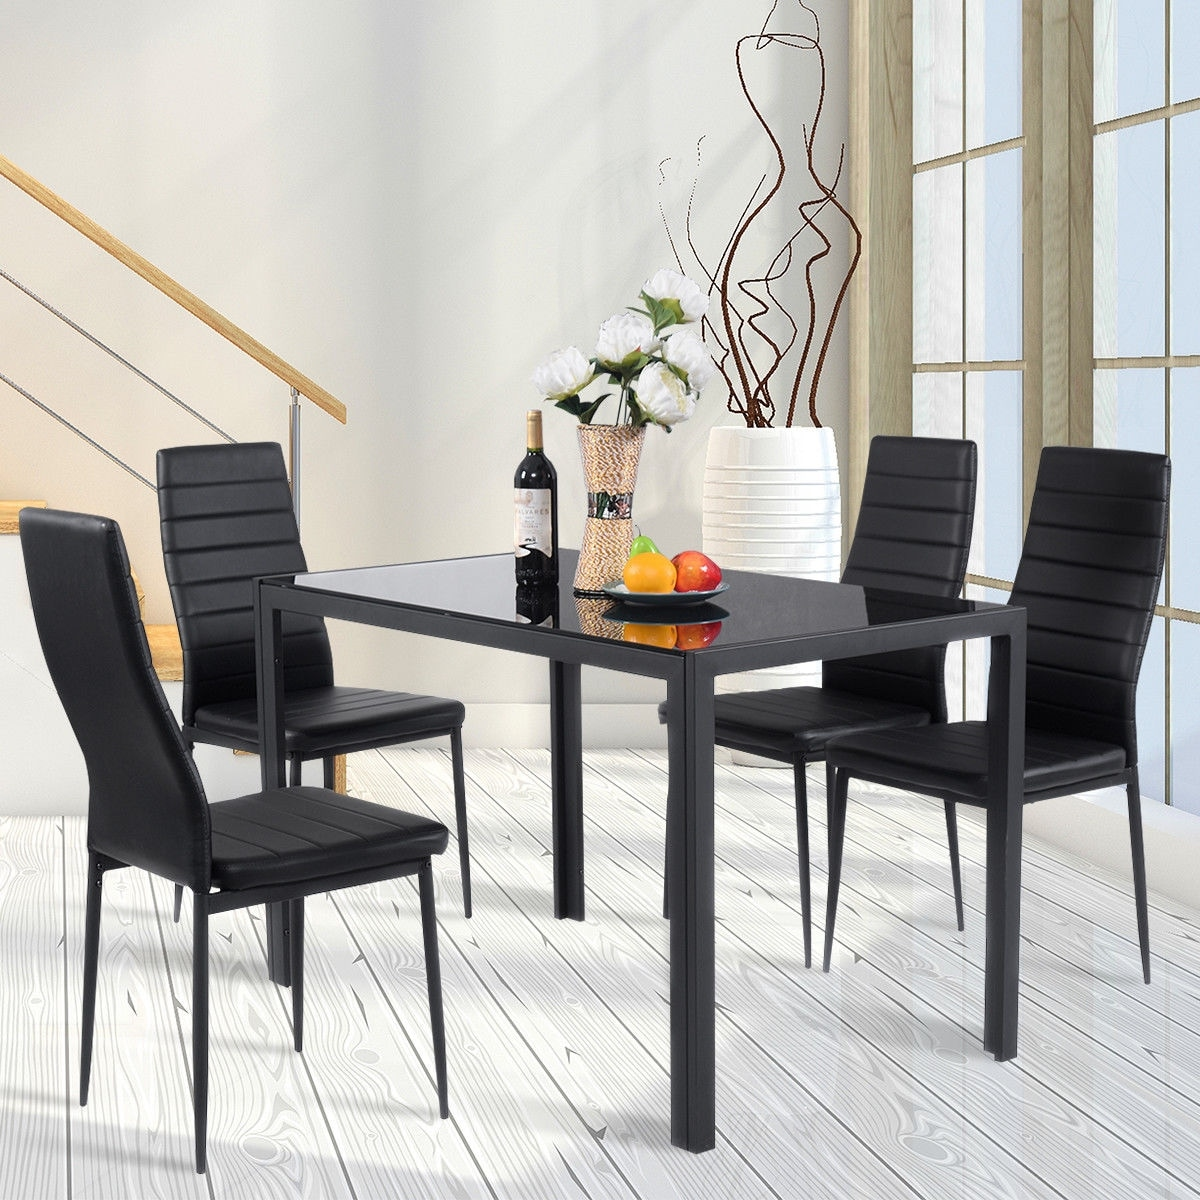 Marvelous Costway 5 Piece Kitchen Dining Set Glass Metal Table And 4 Chairs Breakfast  Furniture   Black